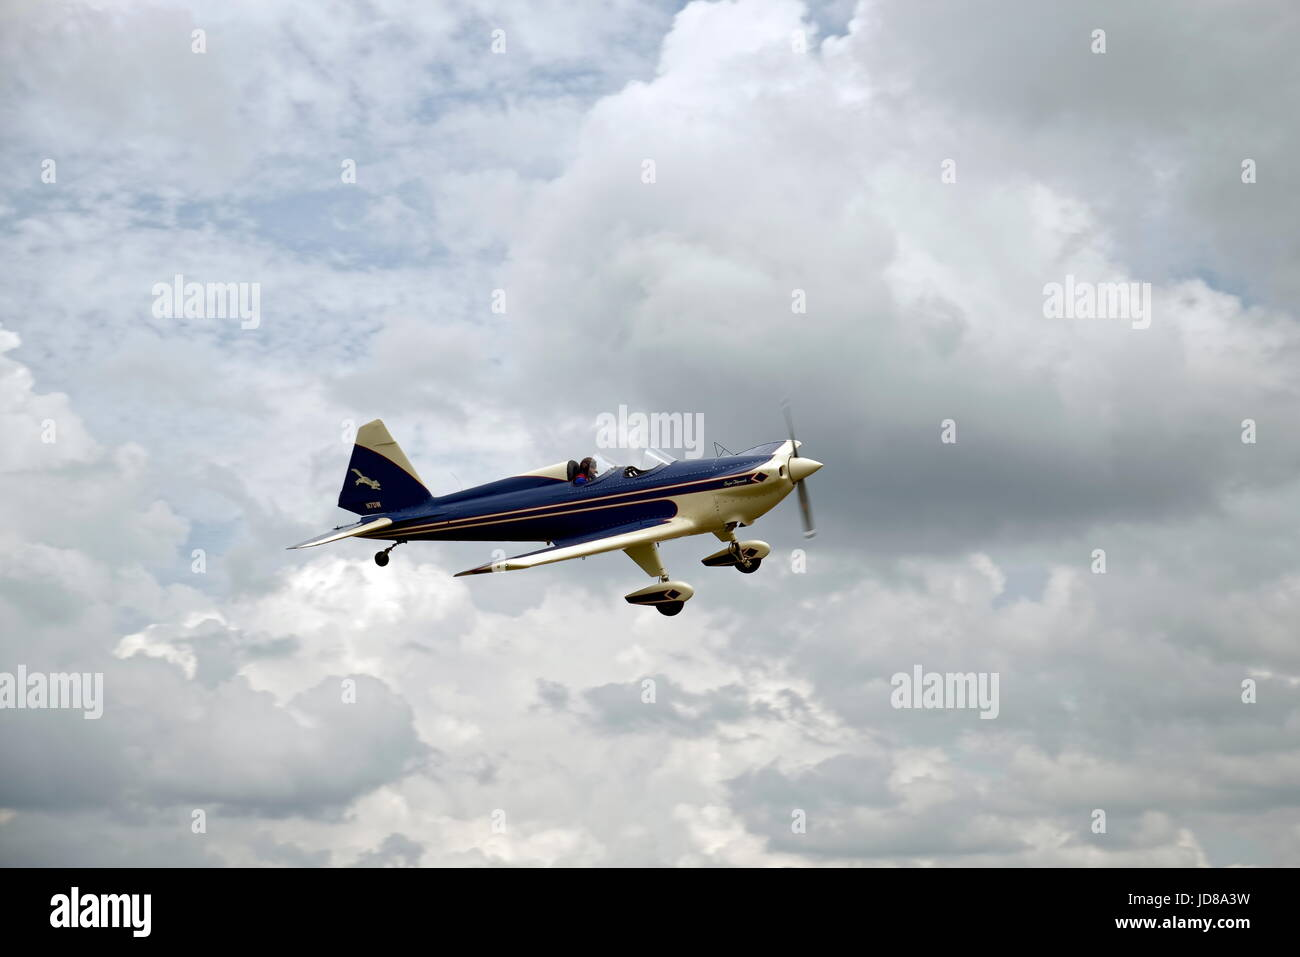 Dehavilland DHC-1 Super Chipmunk. Originally designed as a primary trainer aircraft, it is also capable of aerobatic - Stock Image